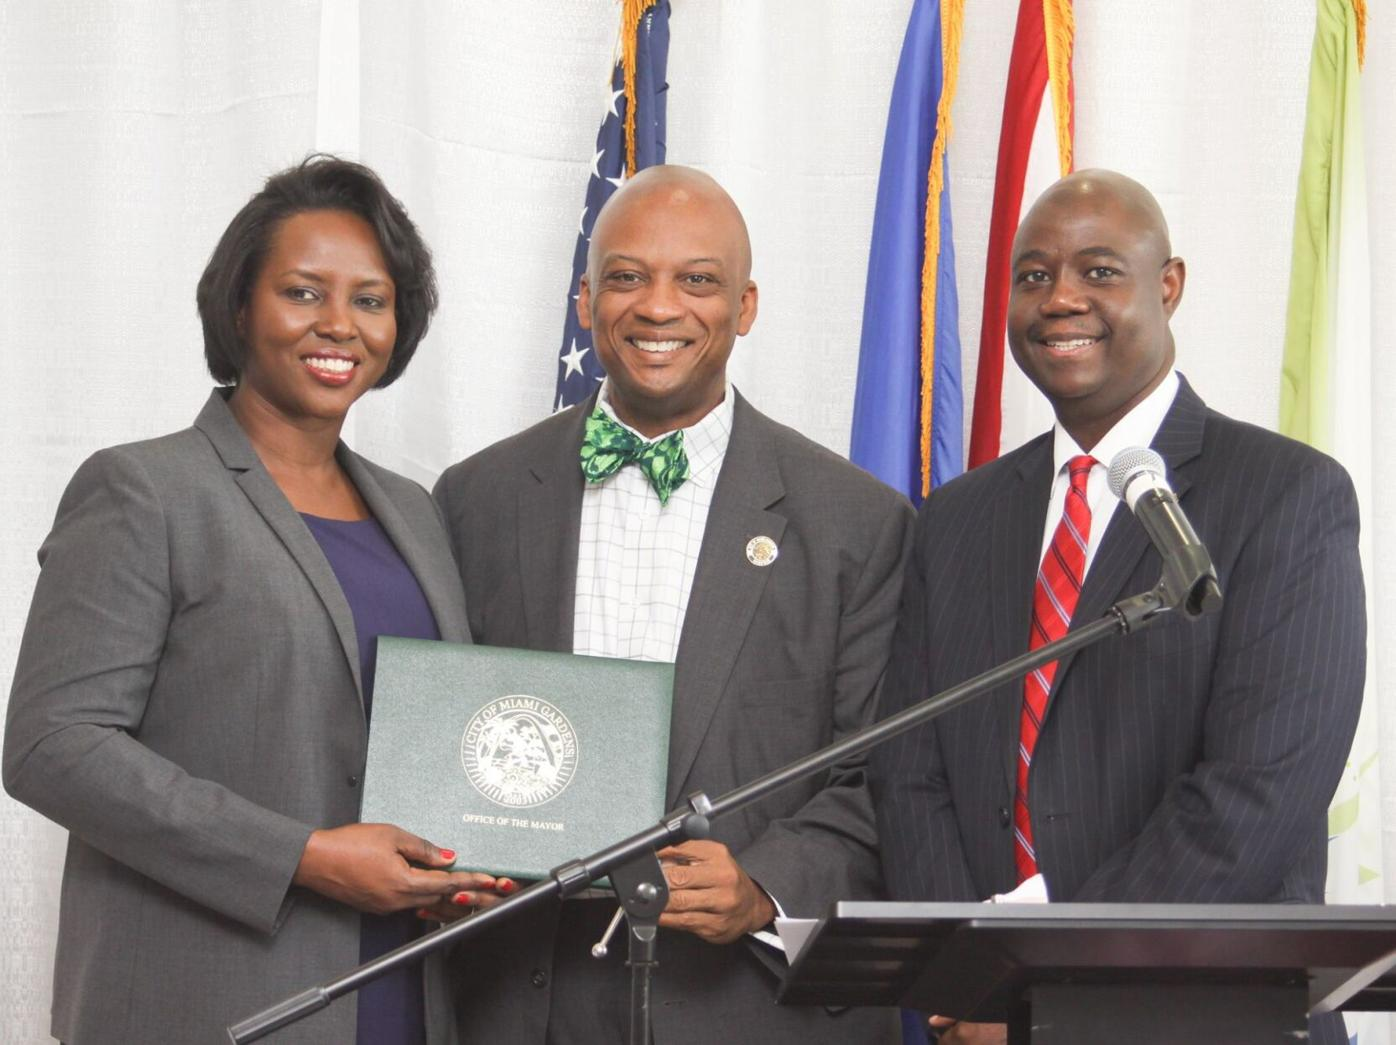 moise honored 2017